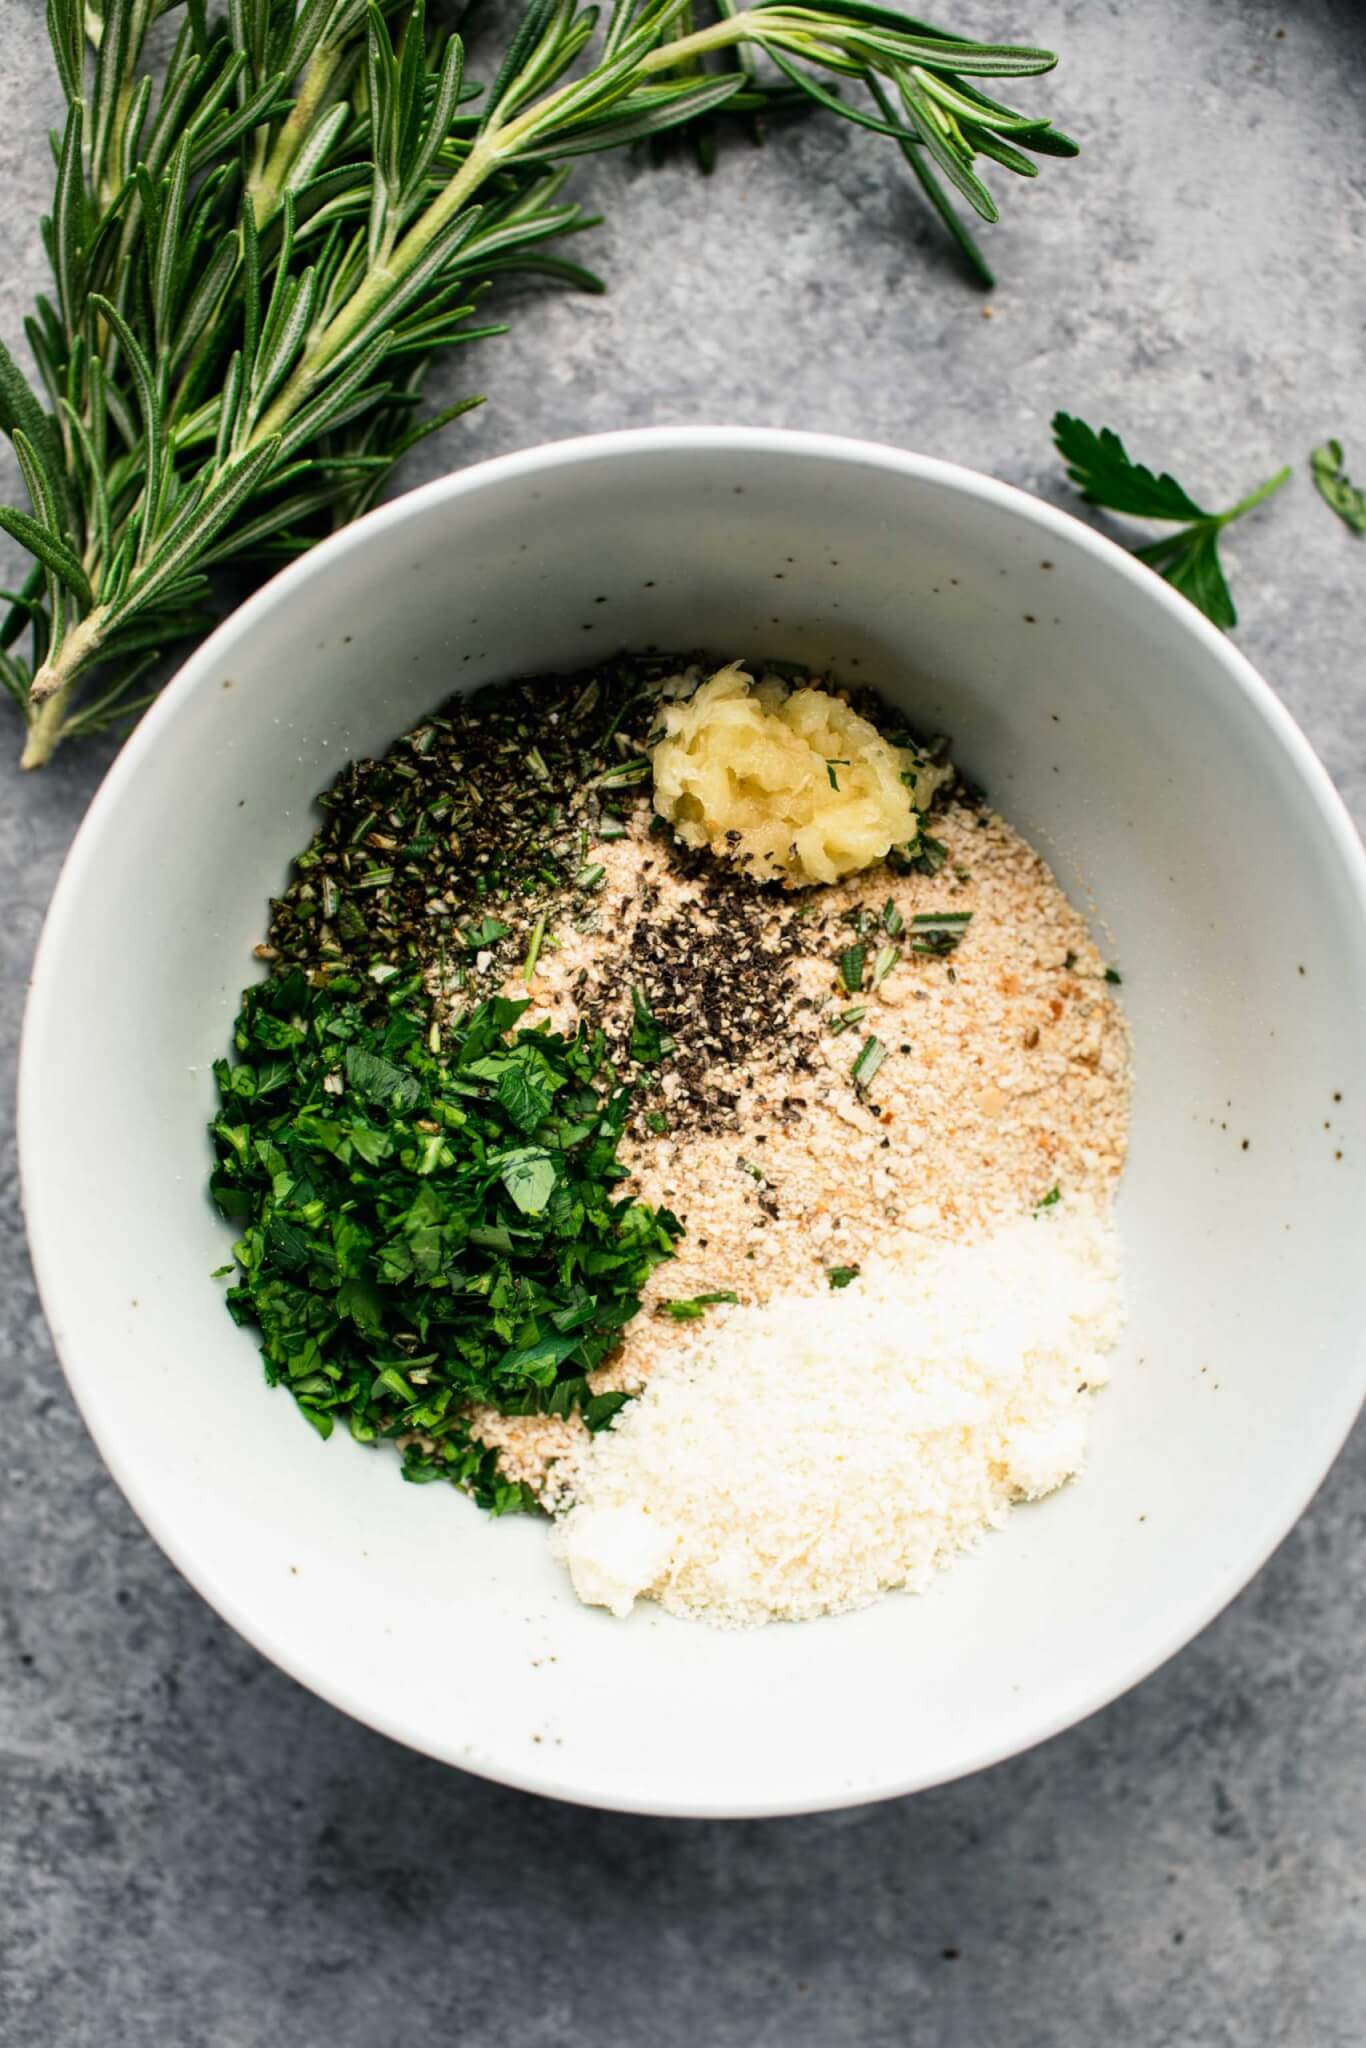 Breadcrumbs, herbs and parmesan cheese in small white bowl.